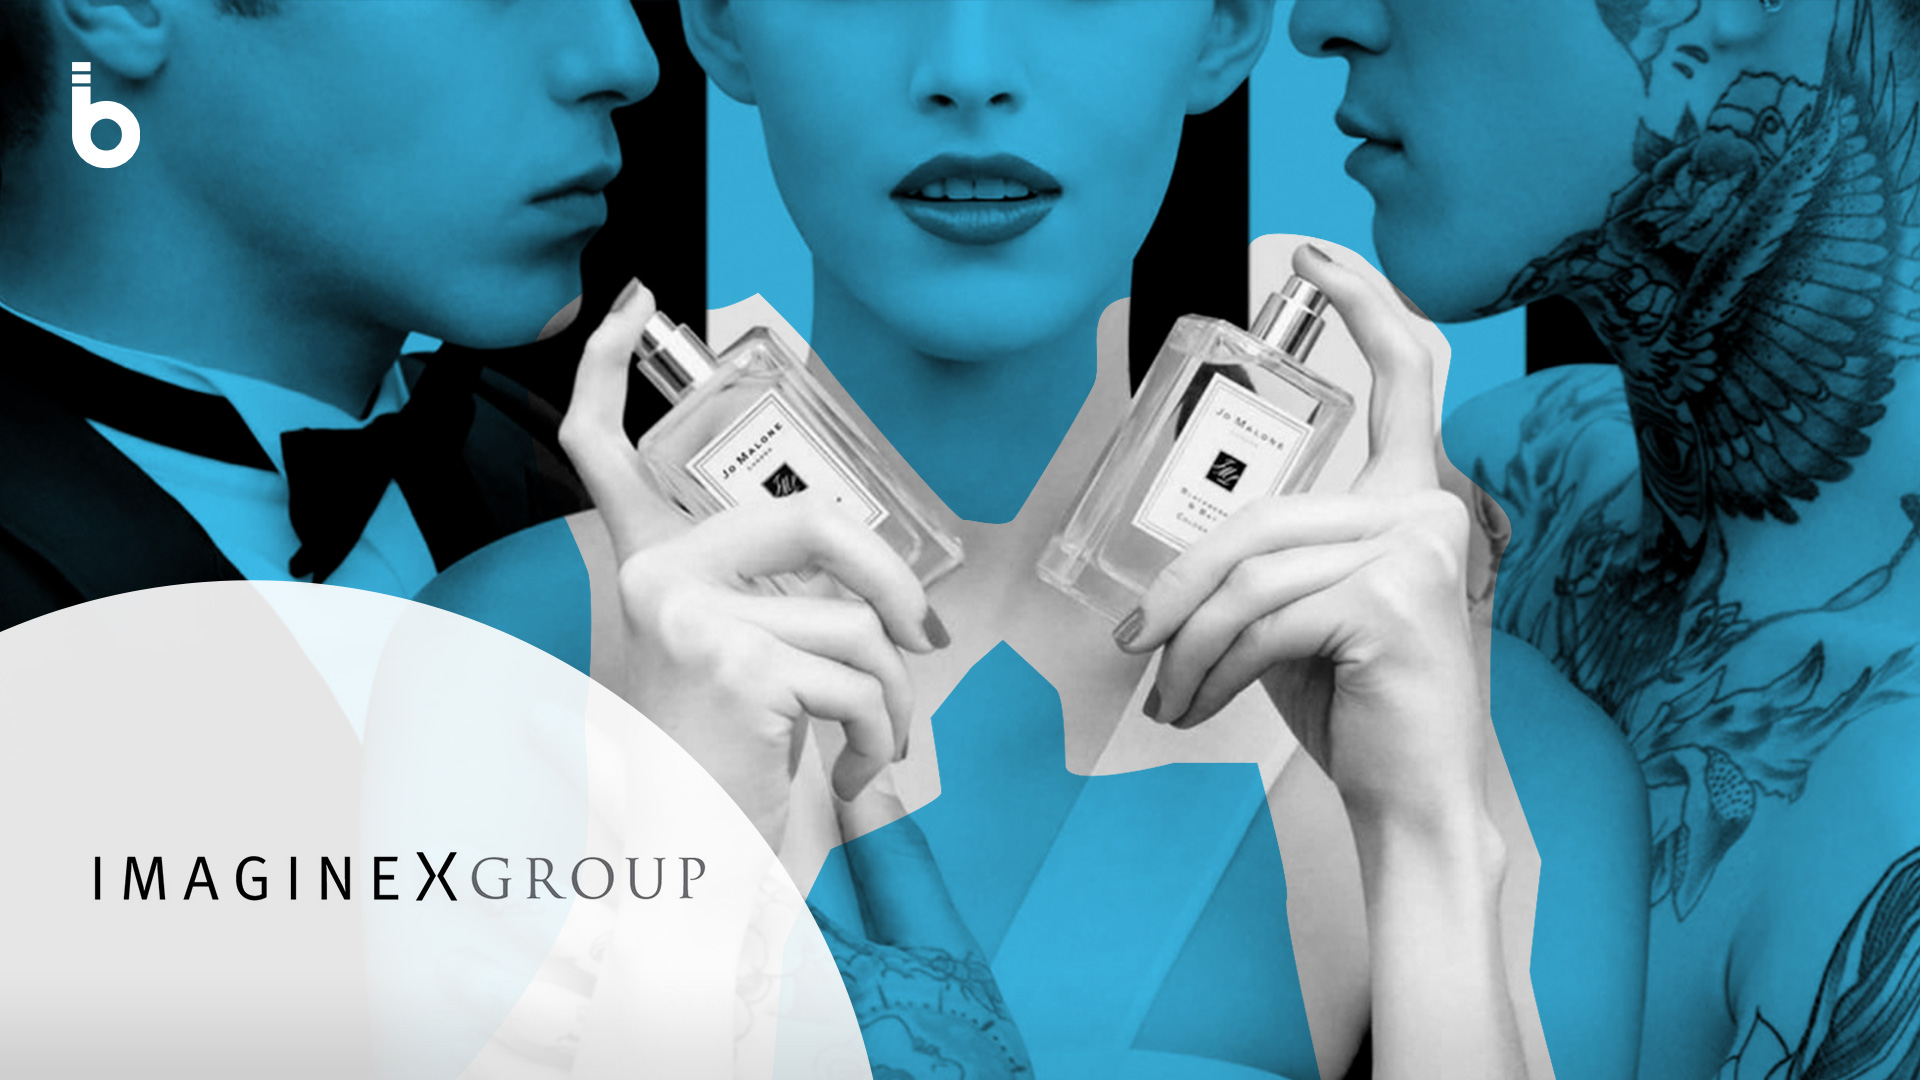 Automating financial processes and digitally transforming access to information at Asia's premier fashion retail group